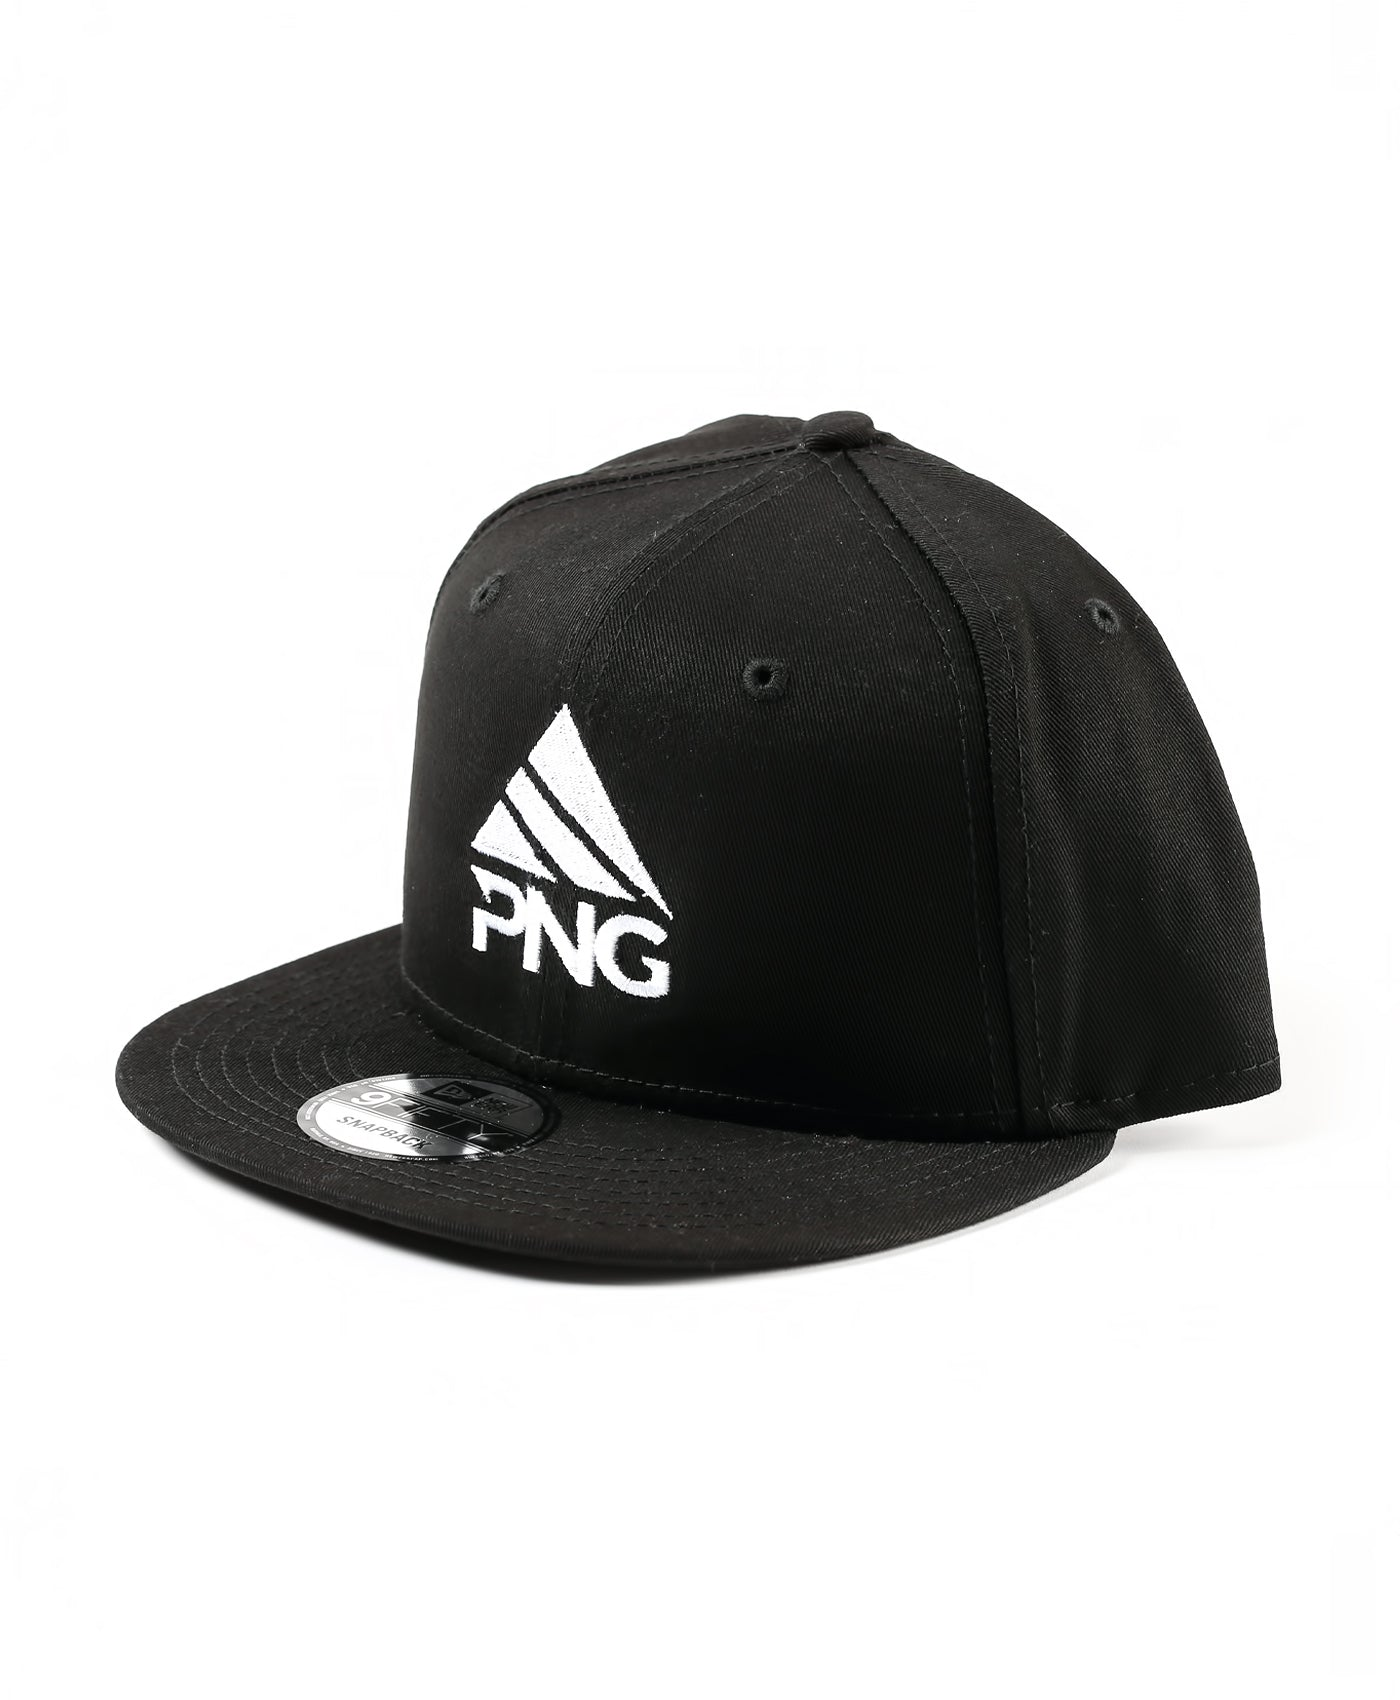 PNG New Era Snapback Hat - Pinnacle Nutrition Group